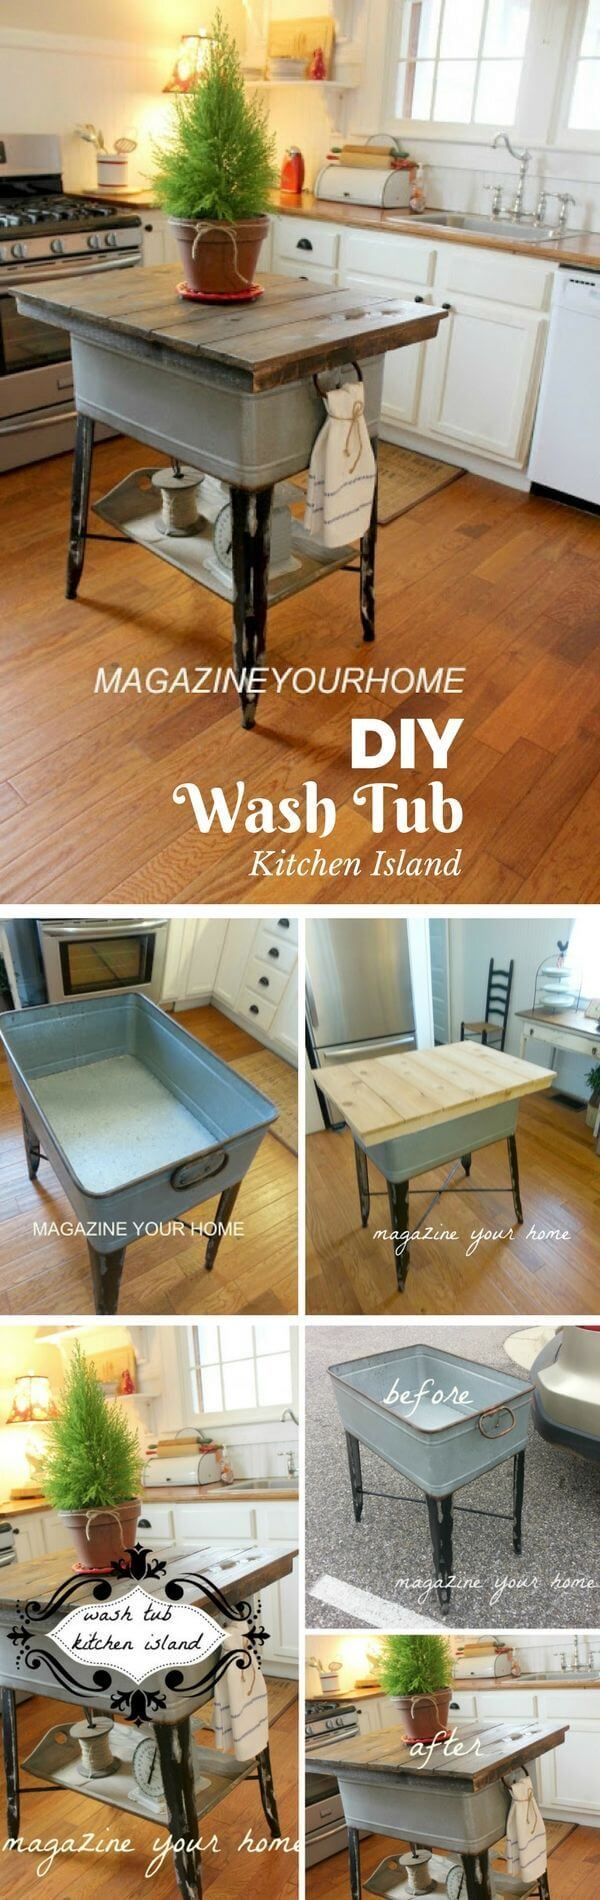 Kitchen Island Made from Wash Tub